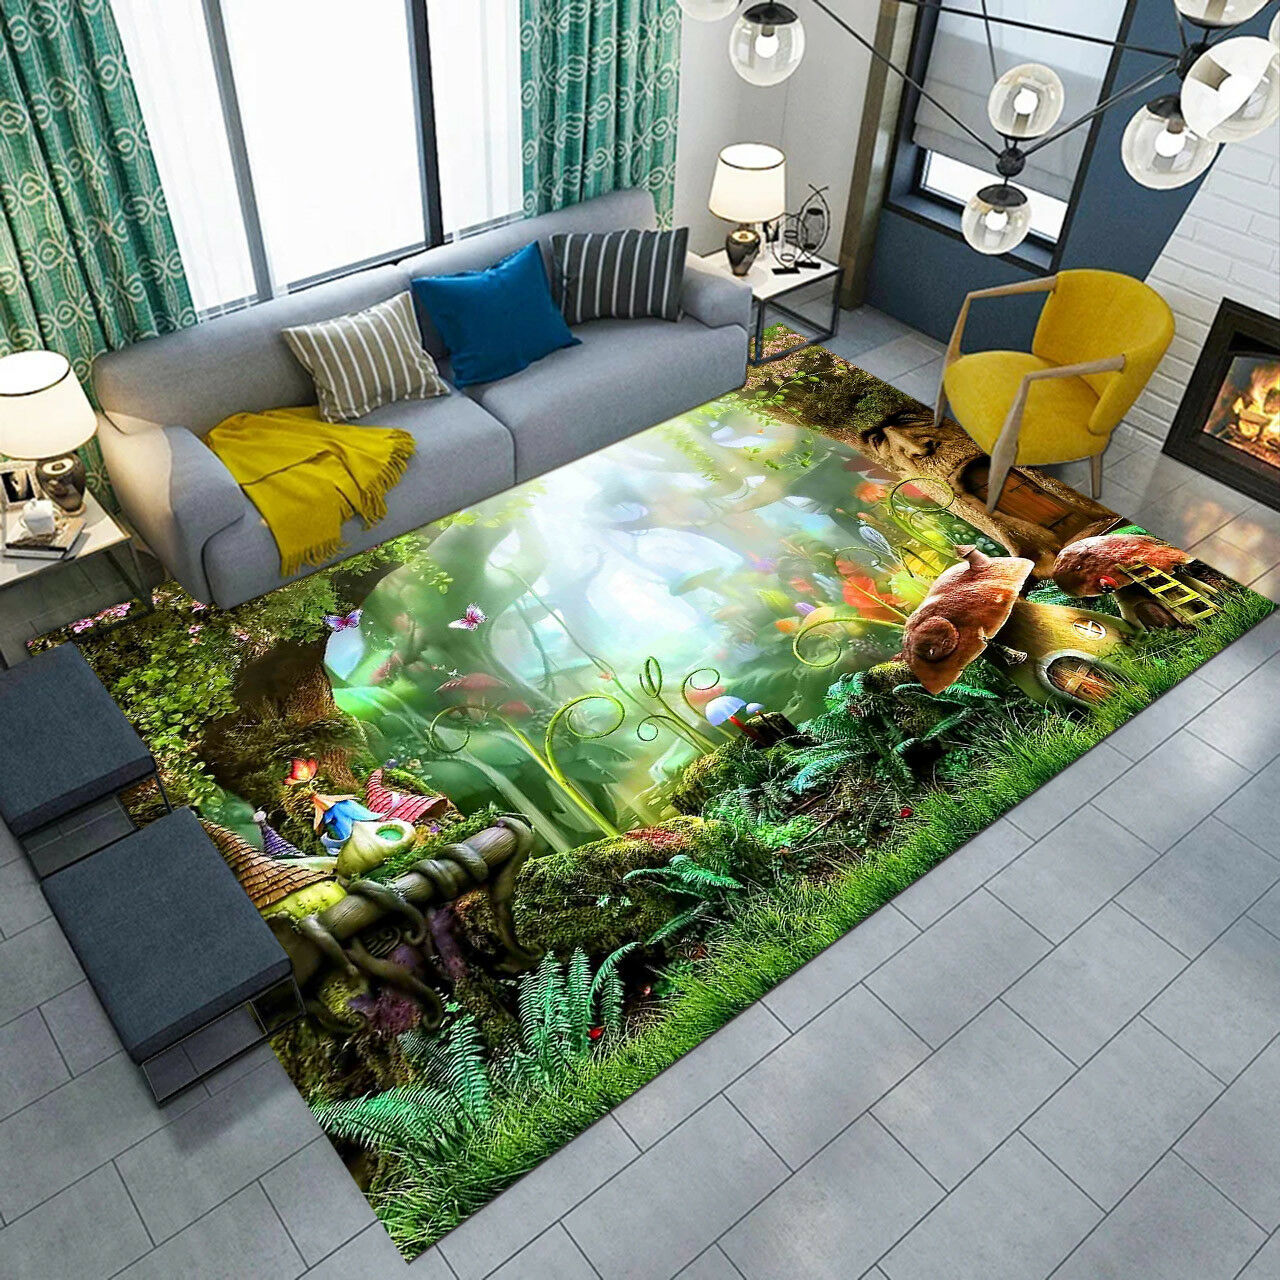 Fairy Tales Mushroom Jungle Area Rugs Kids Play Floor Mat Living Room Carpets